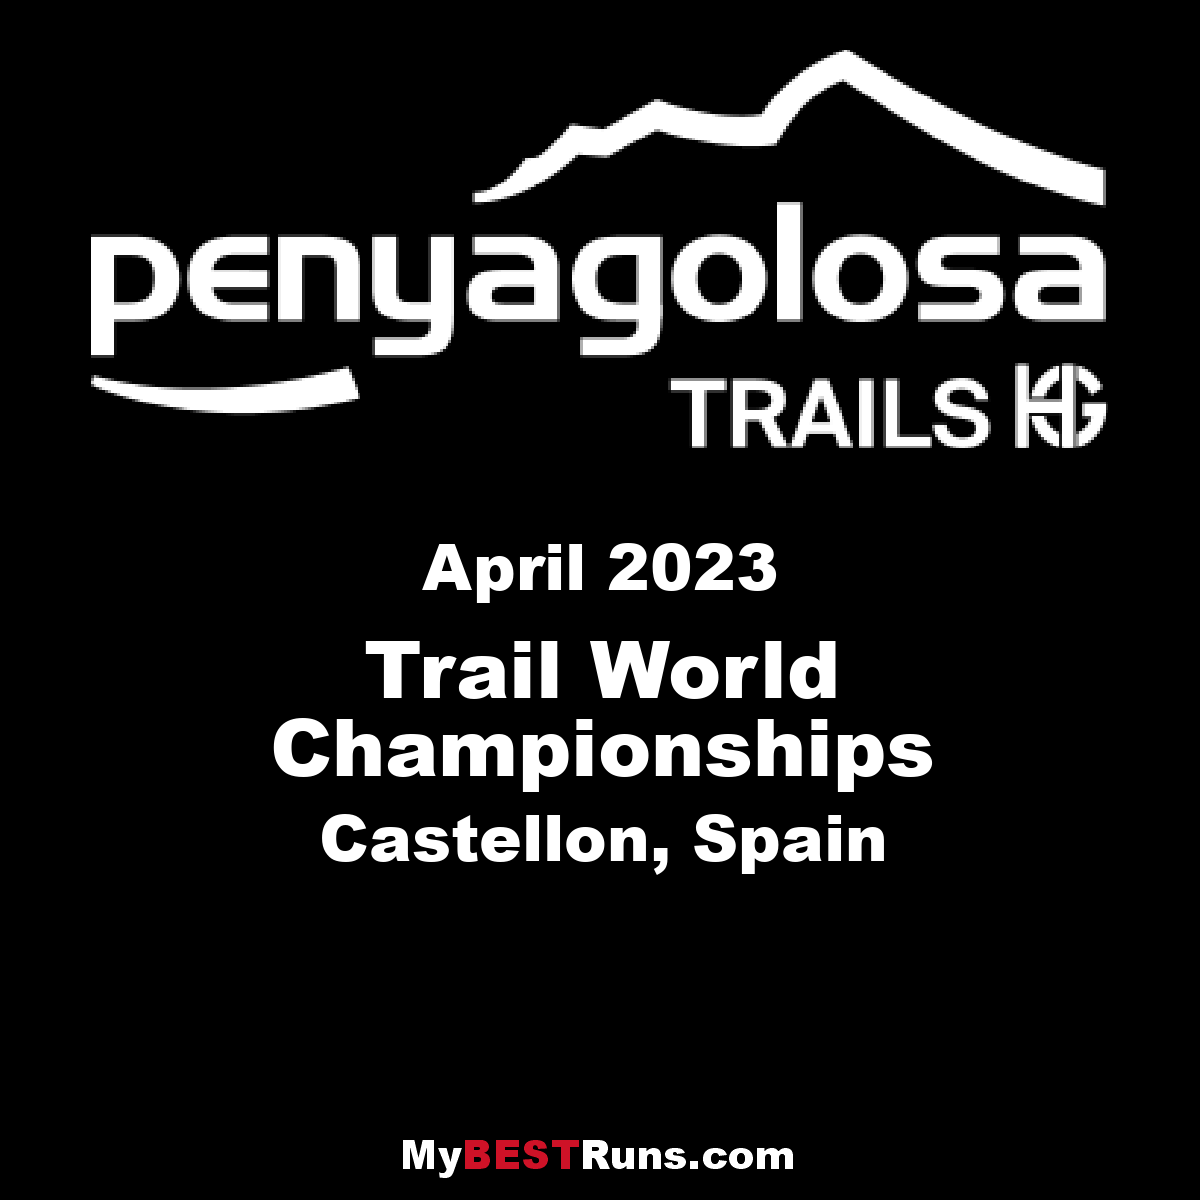 Trail World Championships